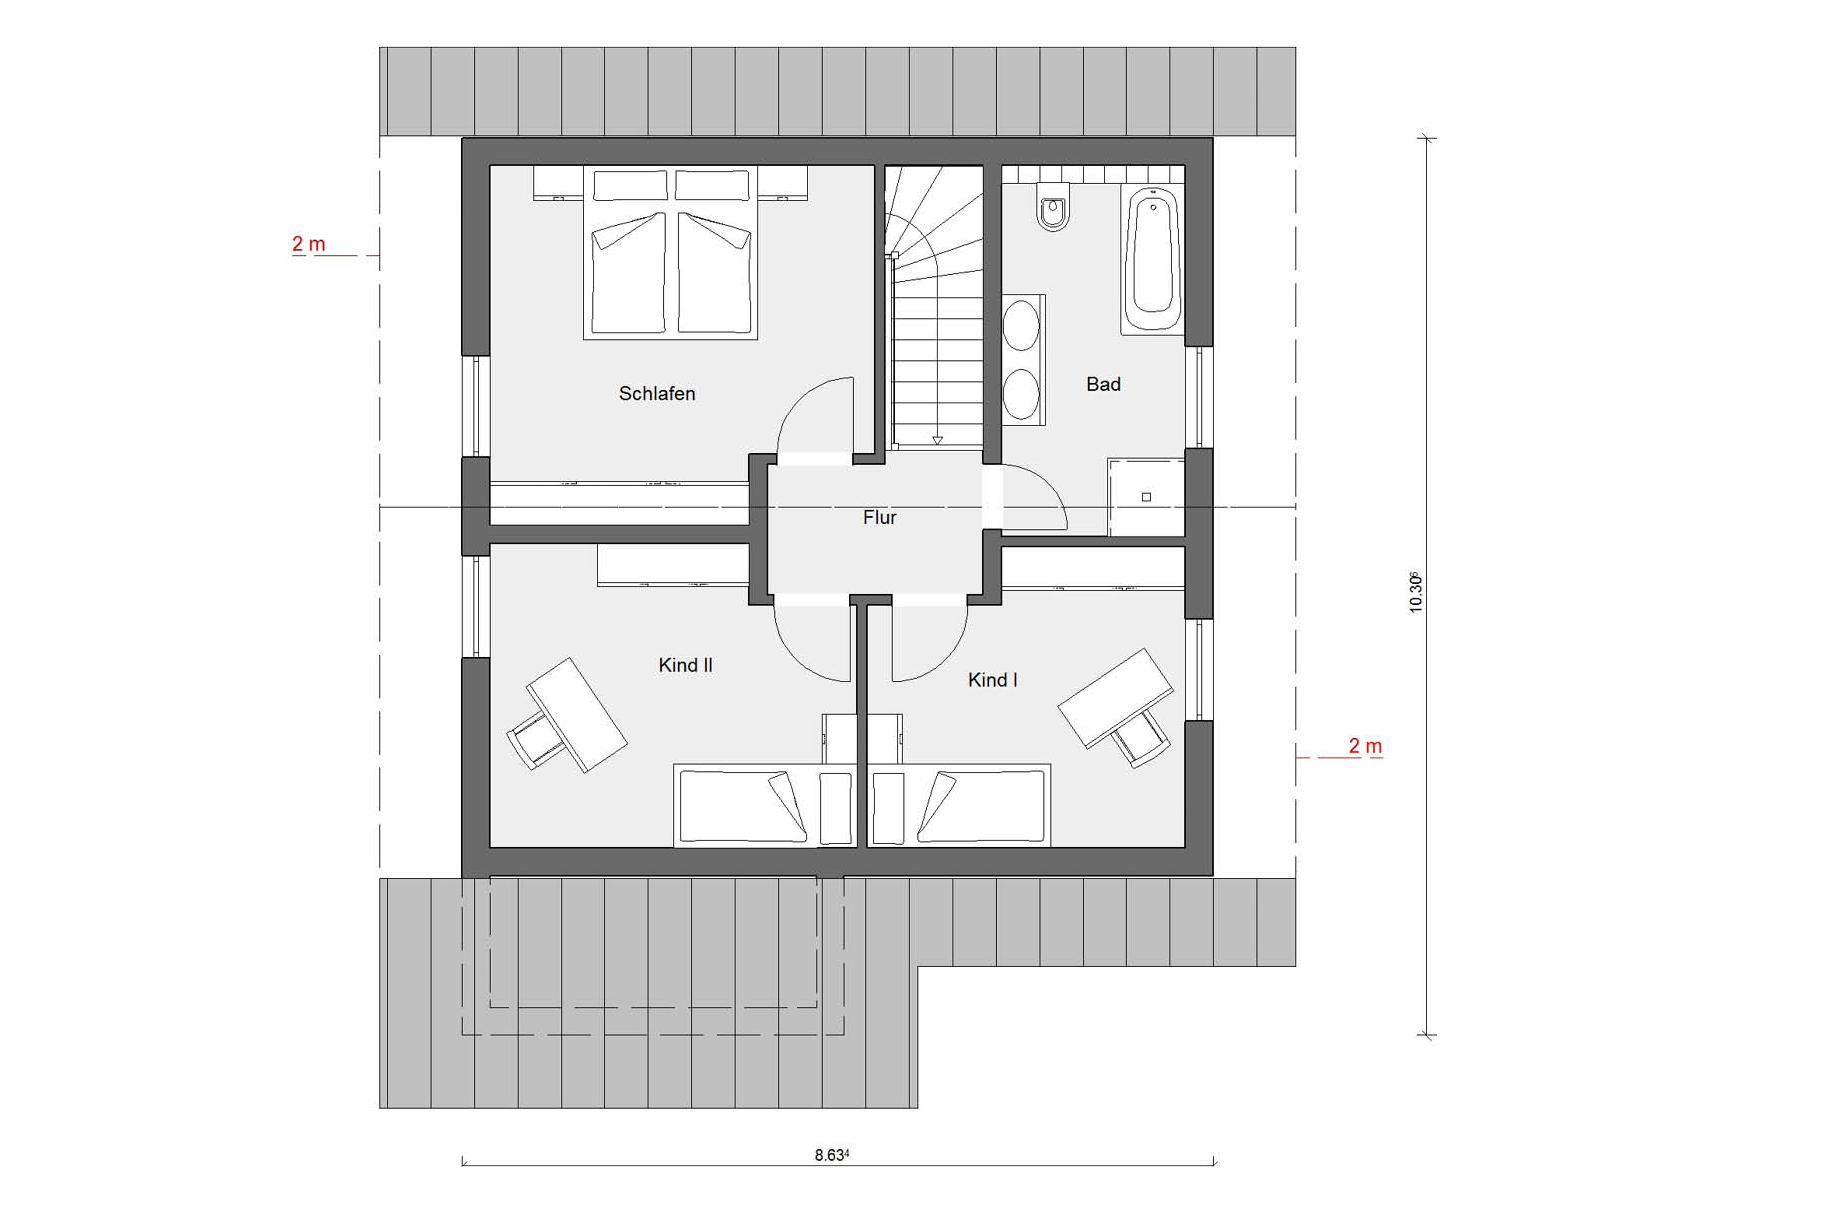 Attic floor plan E 15-125.3 House with large glass surfaces